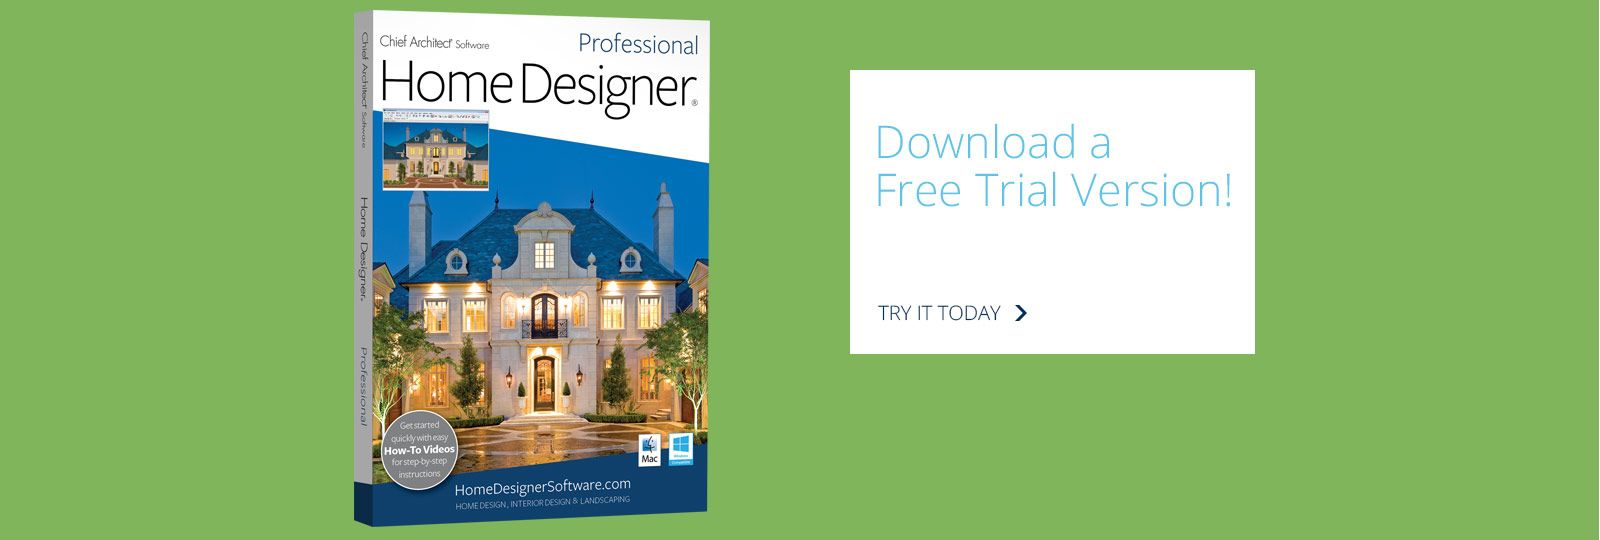 Home Design Software Free Trial For Mac And Pc Home Design Software Home Design Software Free Interior Design Software